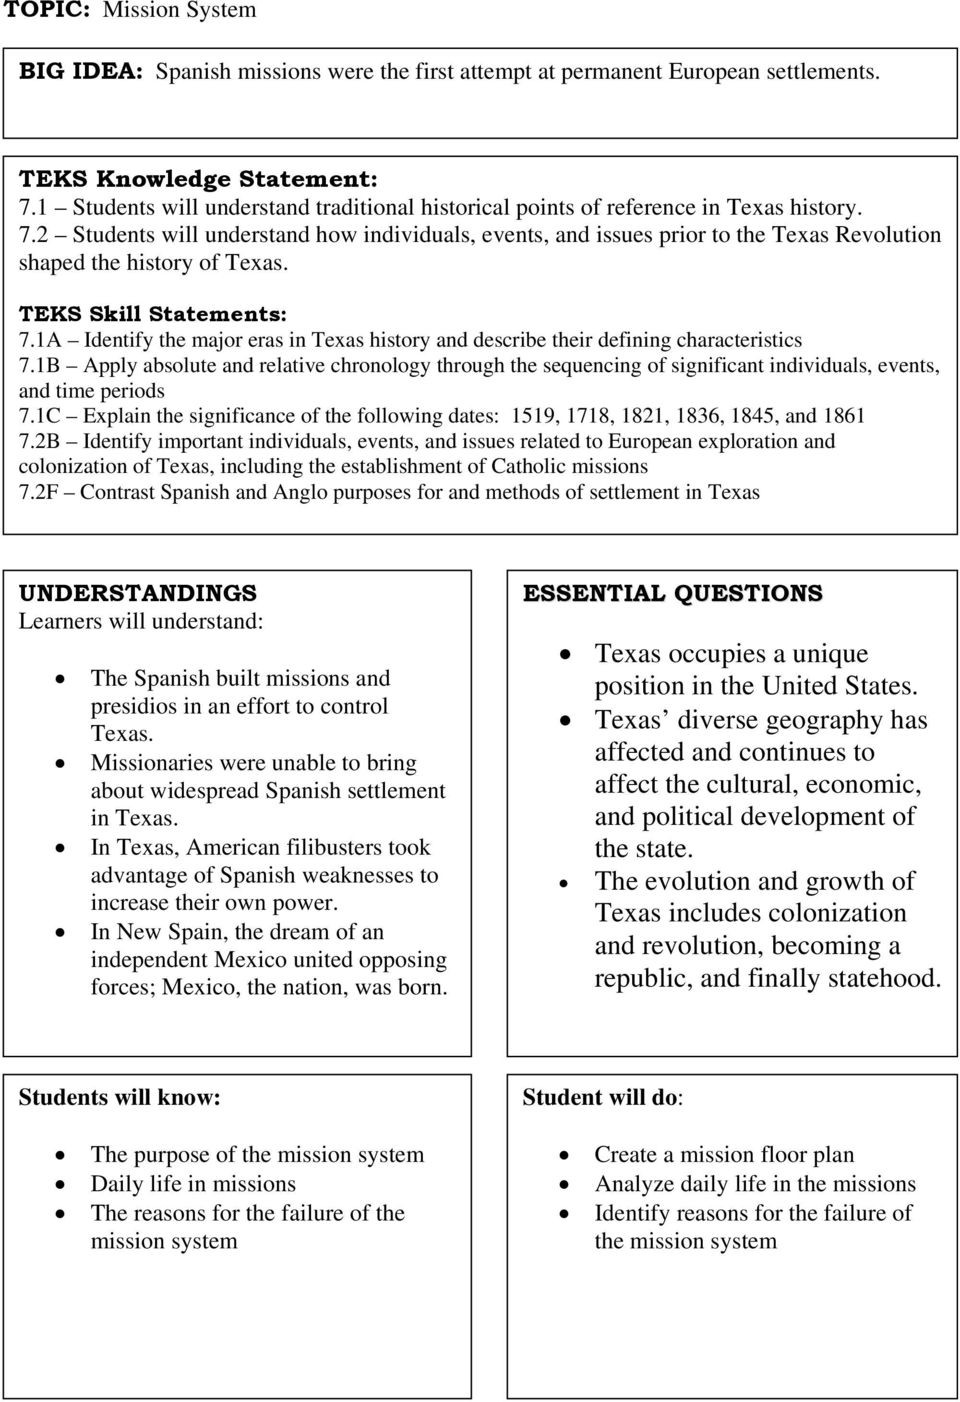 7th Grade Texas History Worksheets 7 Th Grade social Stu S Texas History Pdf Free Download